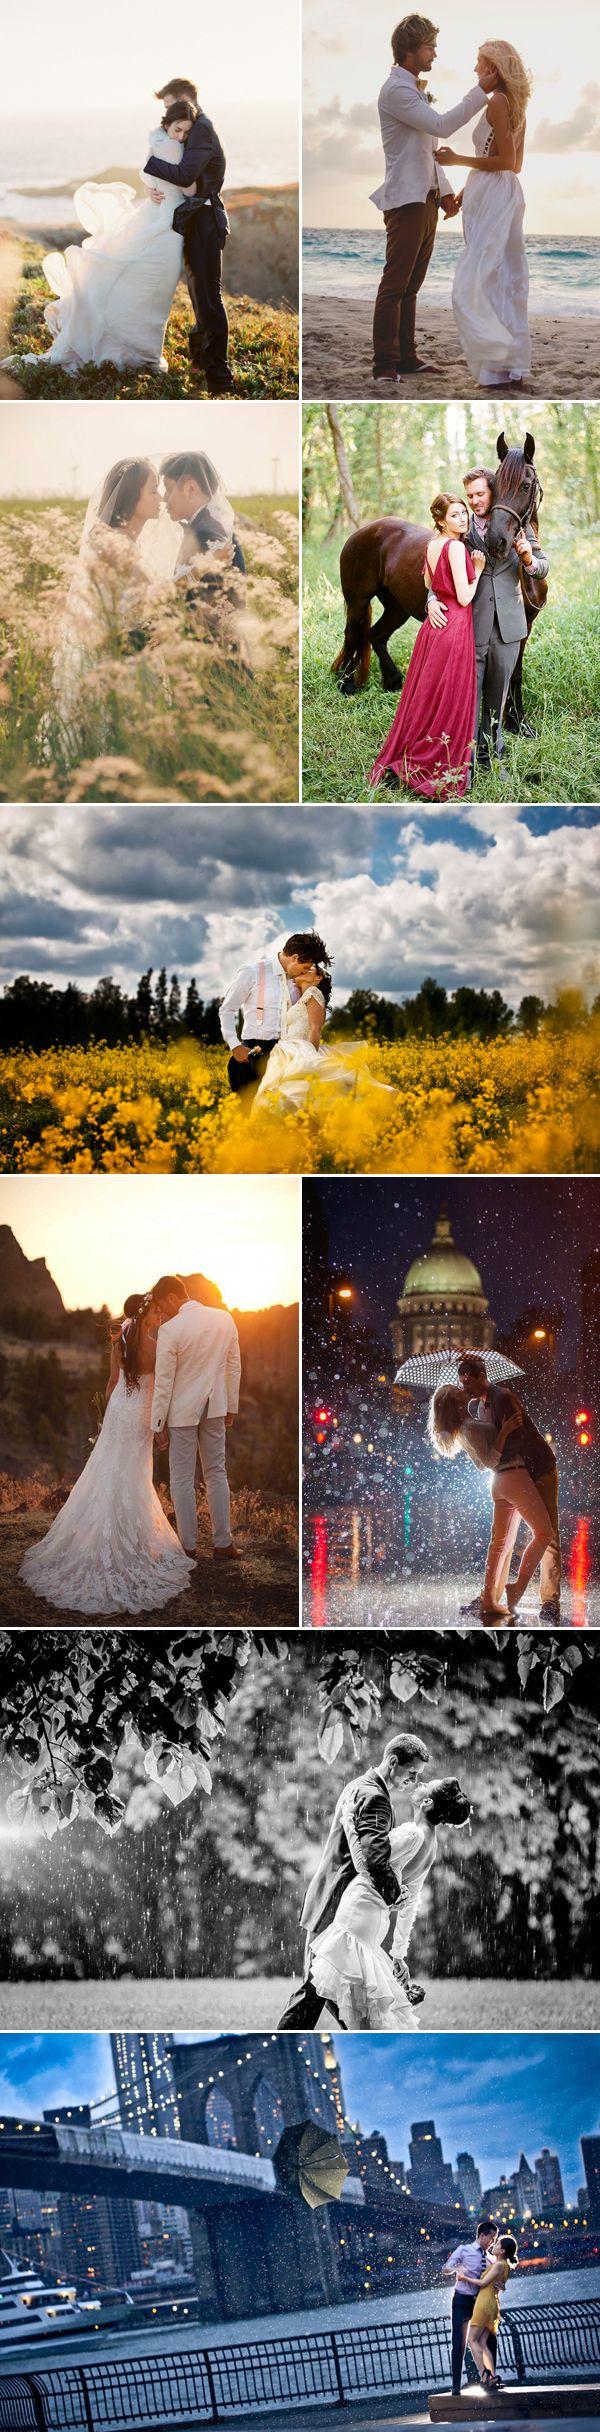 25 Movie-like Engagement Photo Ideas Every Hopeless Romantic Has to Try - Dreamy Romance